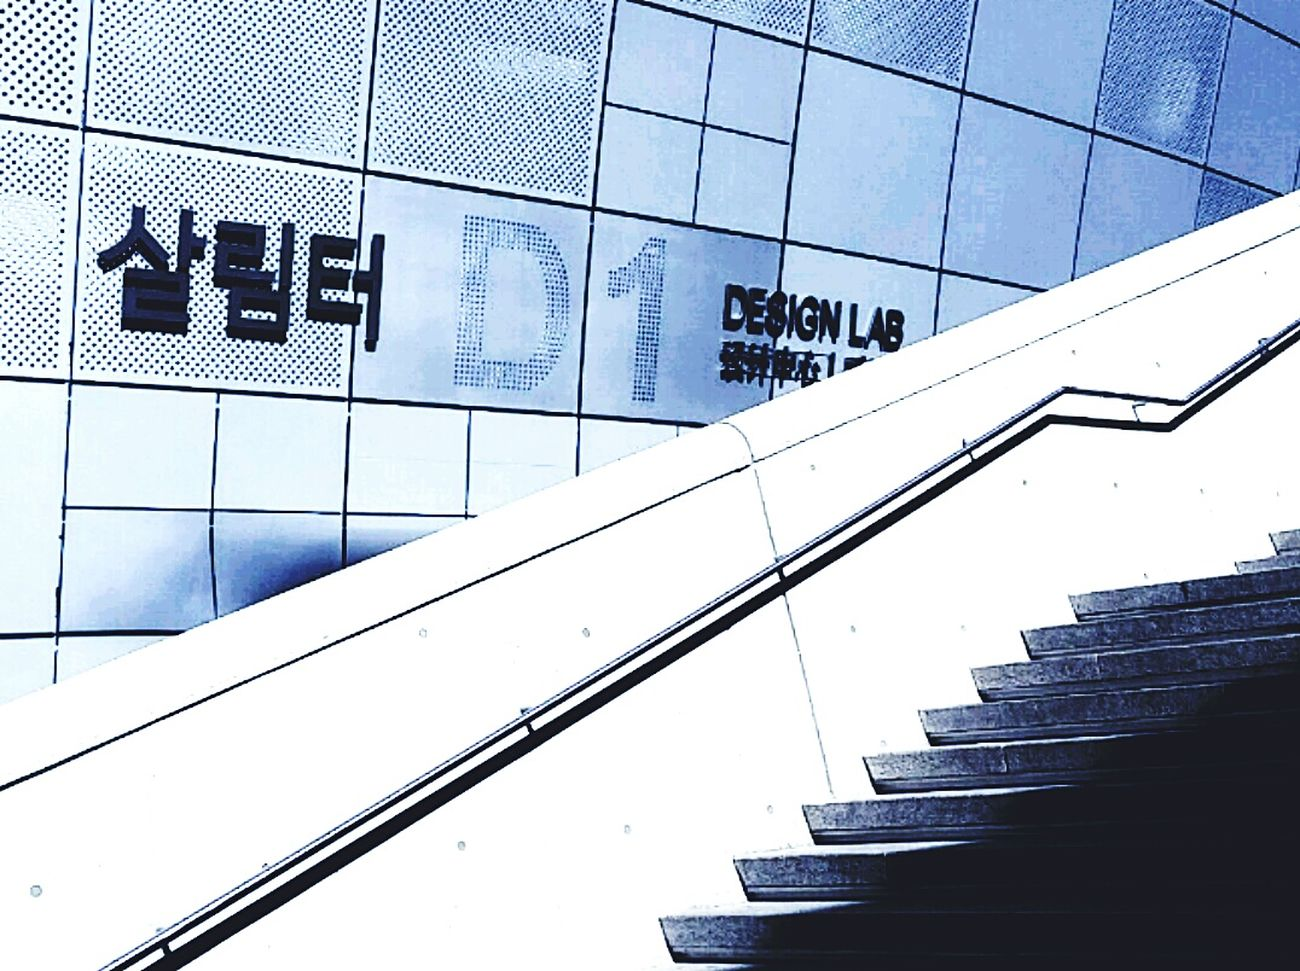 Architektur & Kunst & ne schicke Treppe in Seoul! Unser Treppenreiseblog www.smg-treppen.de/blog & auf Snapchat fast live dabei sein. www.snapchat.com/add/smgtreppen Metal Architecture No People Staircase Cultures Travel Photography Geometric Shapes Perspectives And Dimensions From My Point Of View Mobilephotography Seoul, Korea Seoul Zaha Hadid Architecture_collection EyeEm Masterclass EyeEmNewHere Stairways Day Stairs_collection